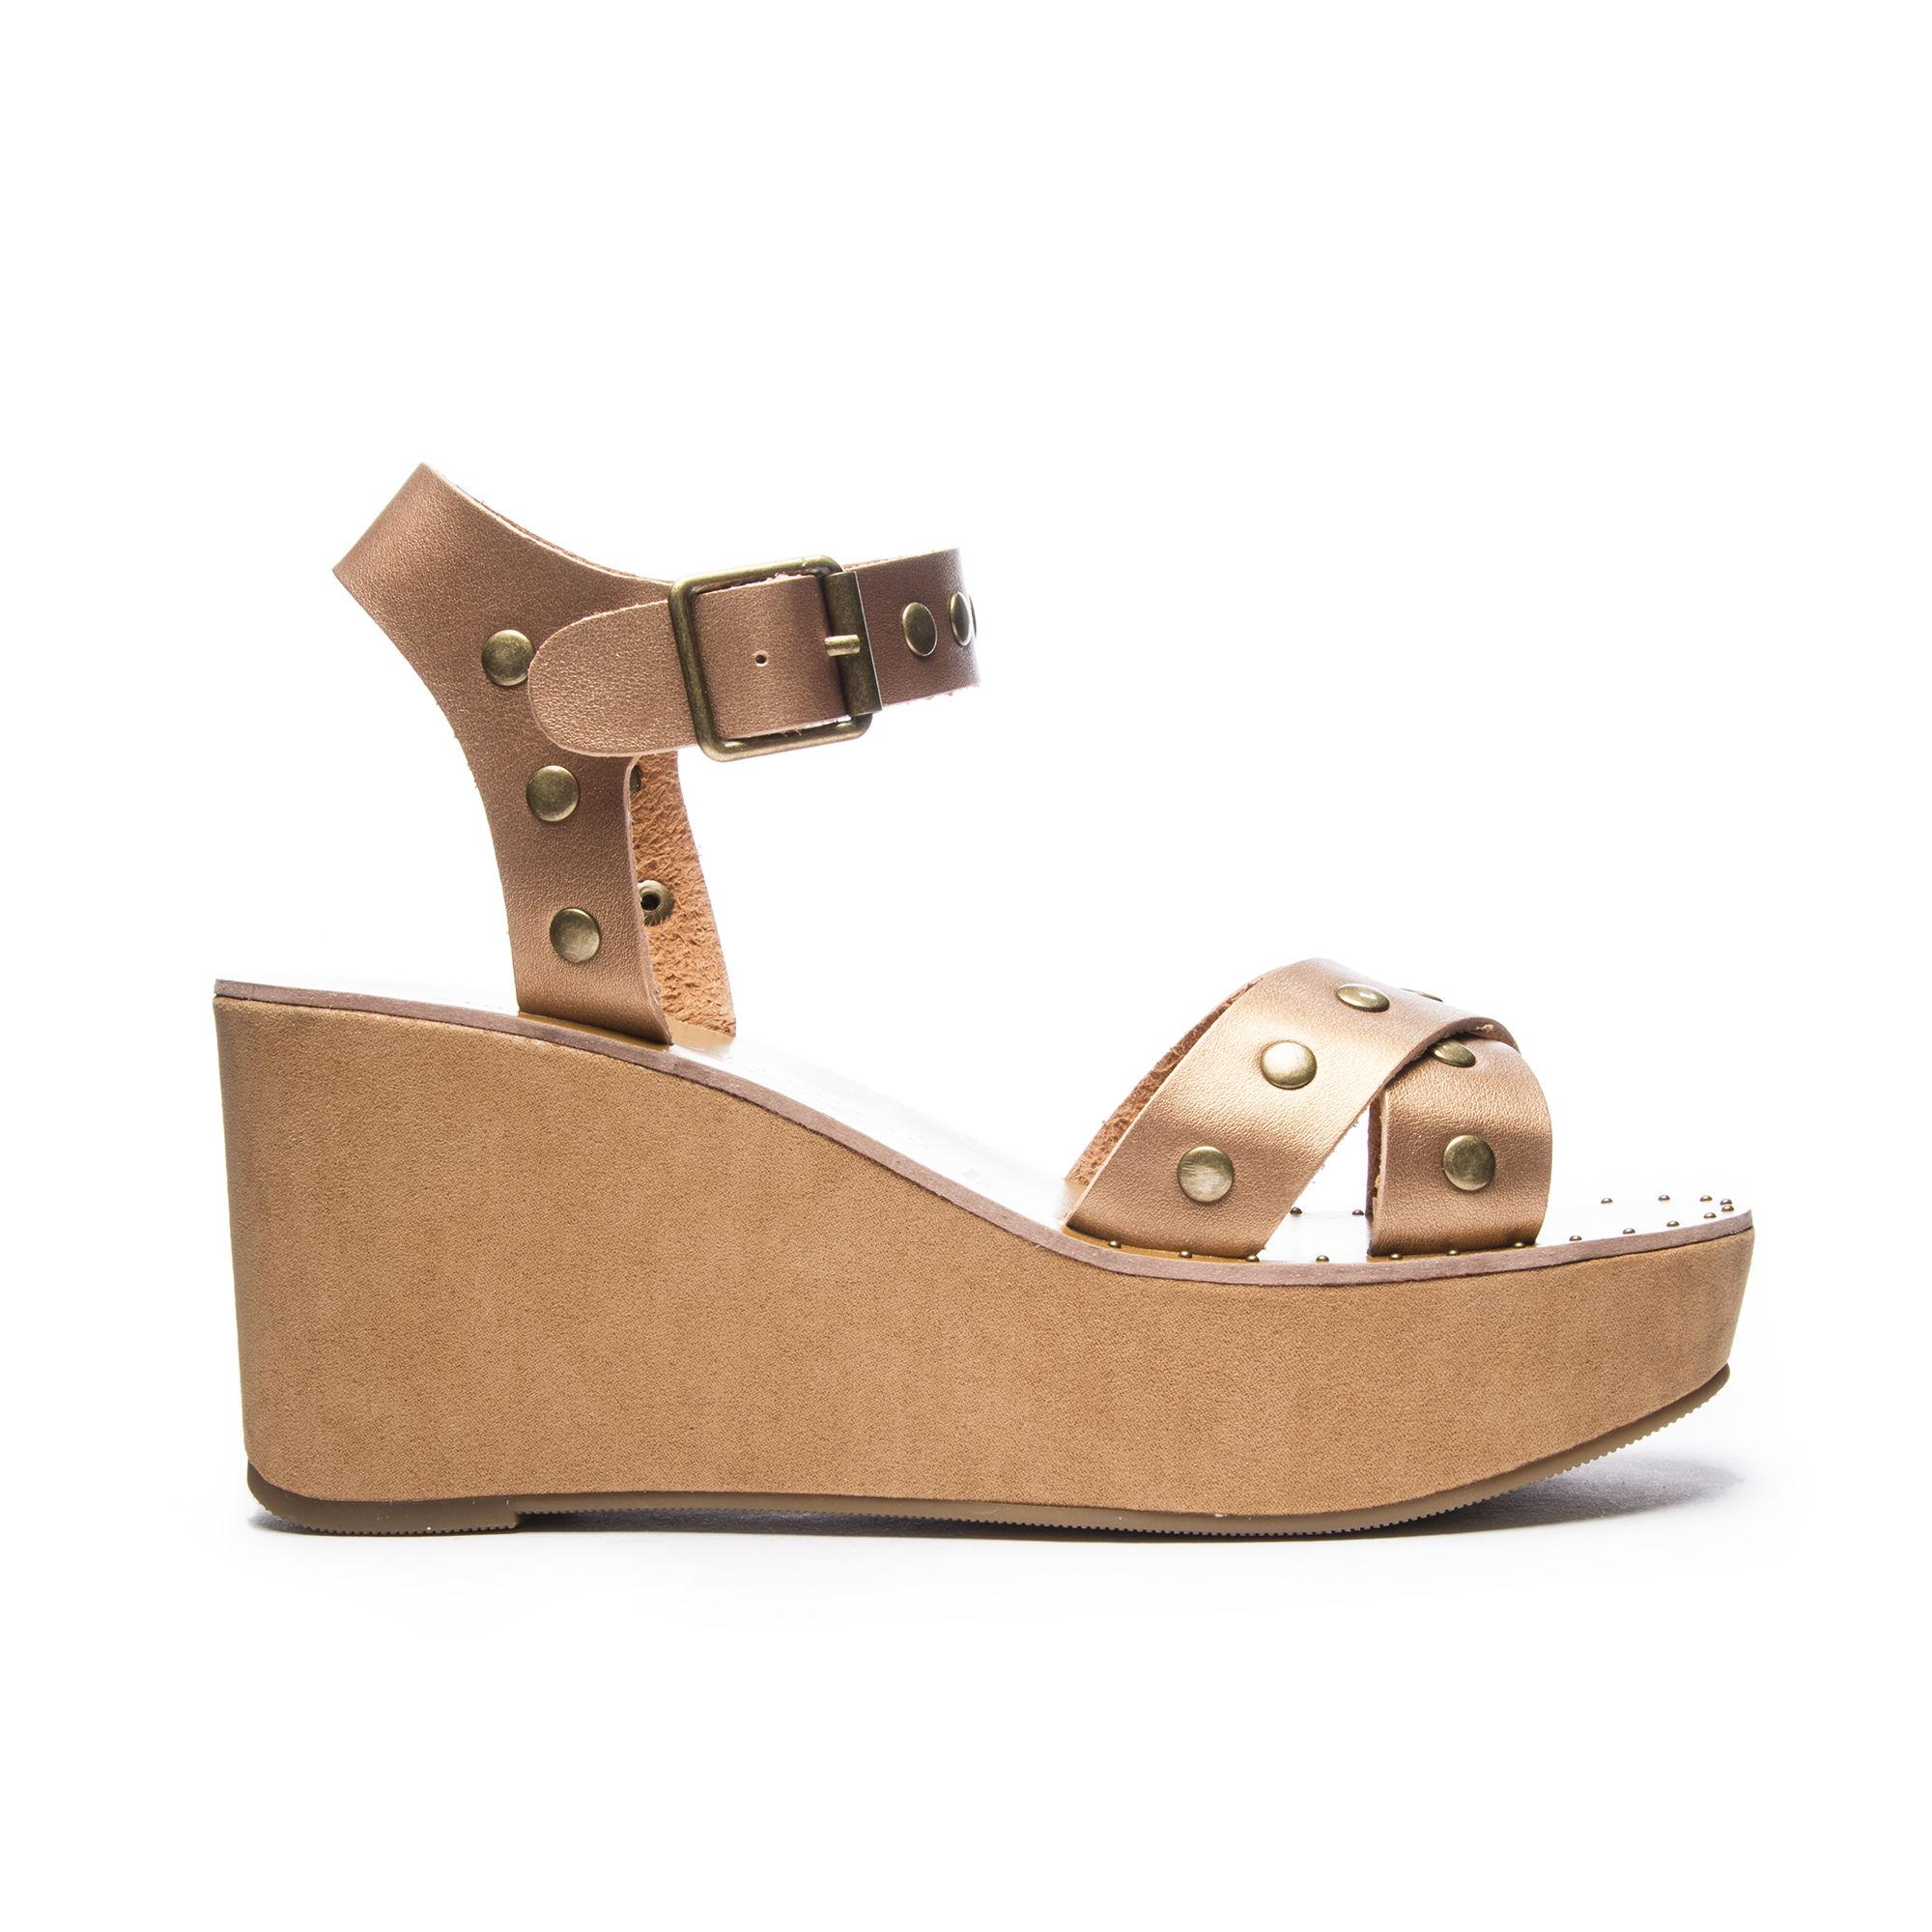 fde0439e85dc Chinese Laundry - Multicolor Ozzie Wedge Sandal - Lyst. View fullscreen